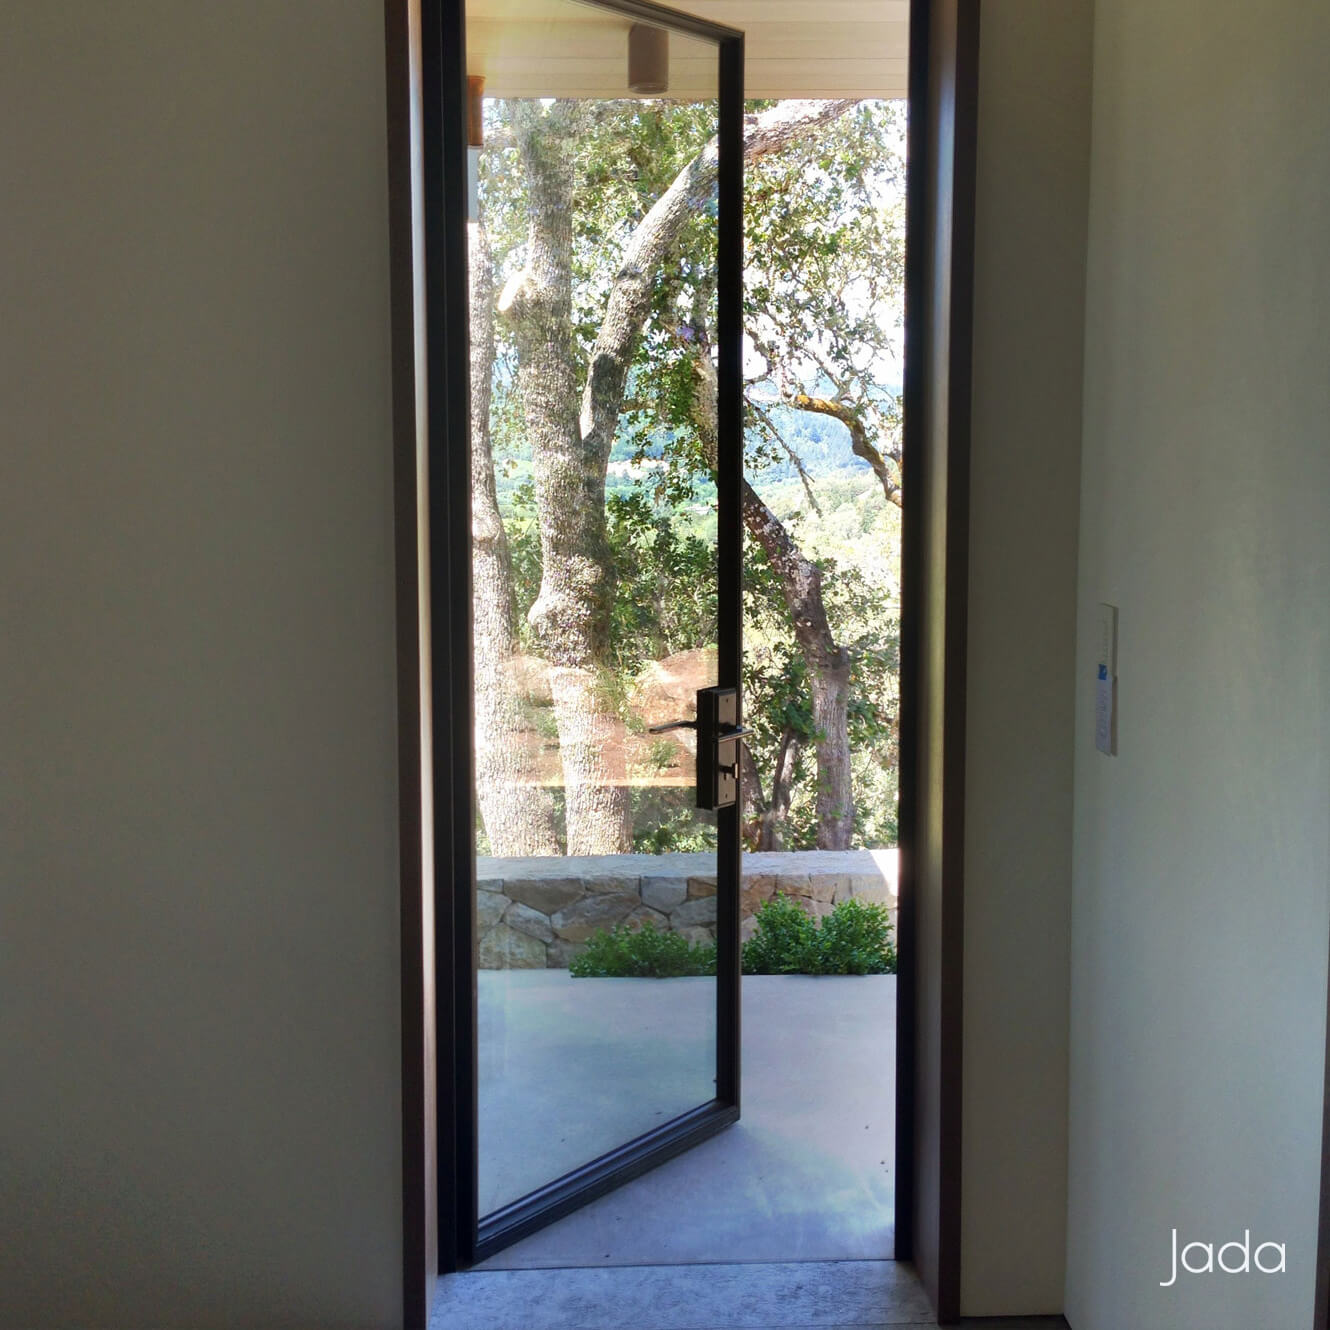 Ontario Building Code Door Sizes EMERGENCY EGRESS WINDOW. Steel Outswing  Doors Jada